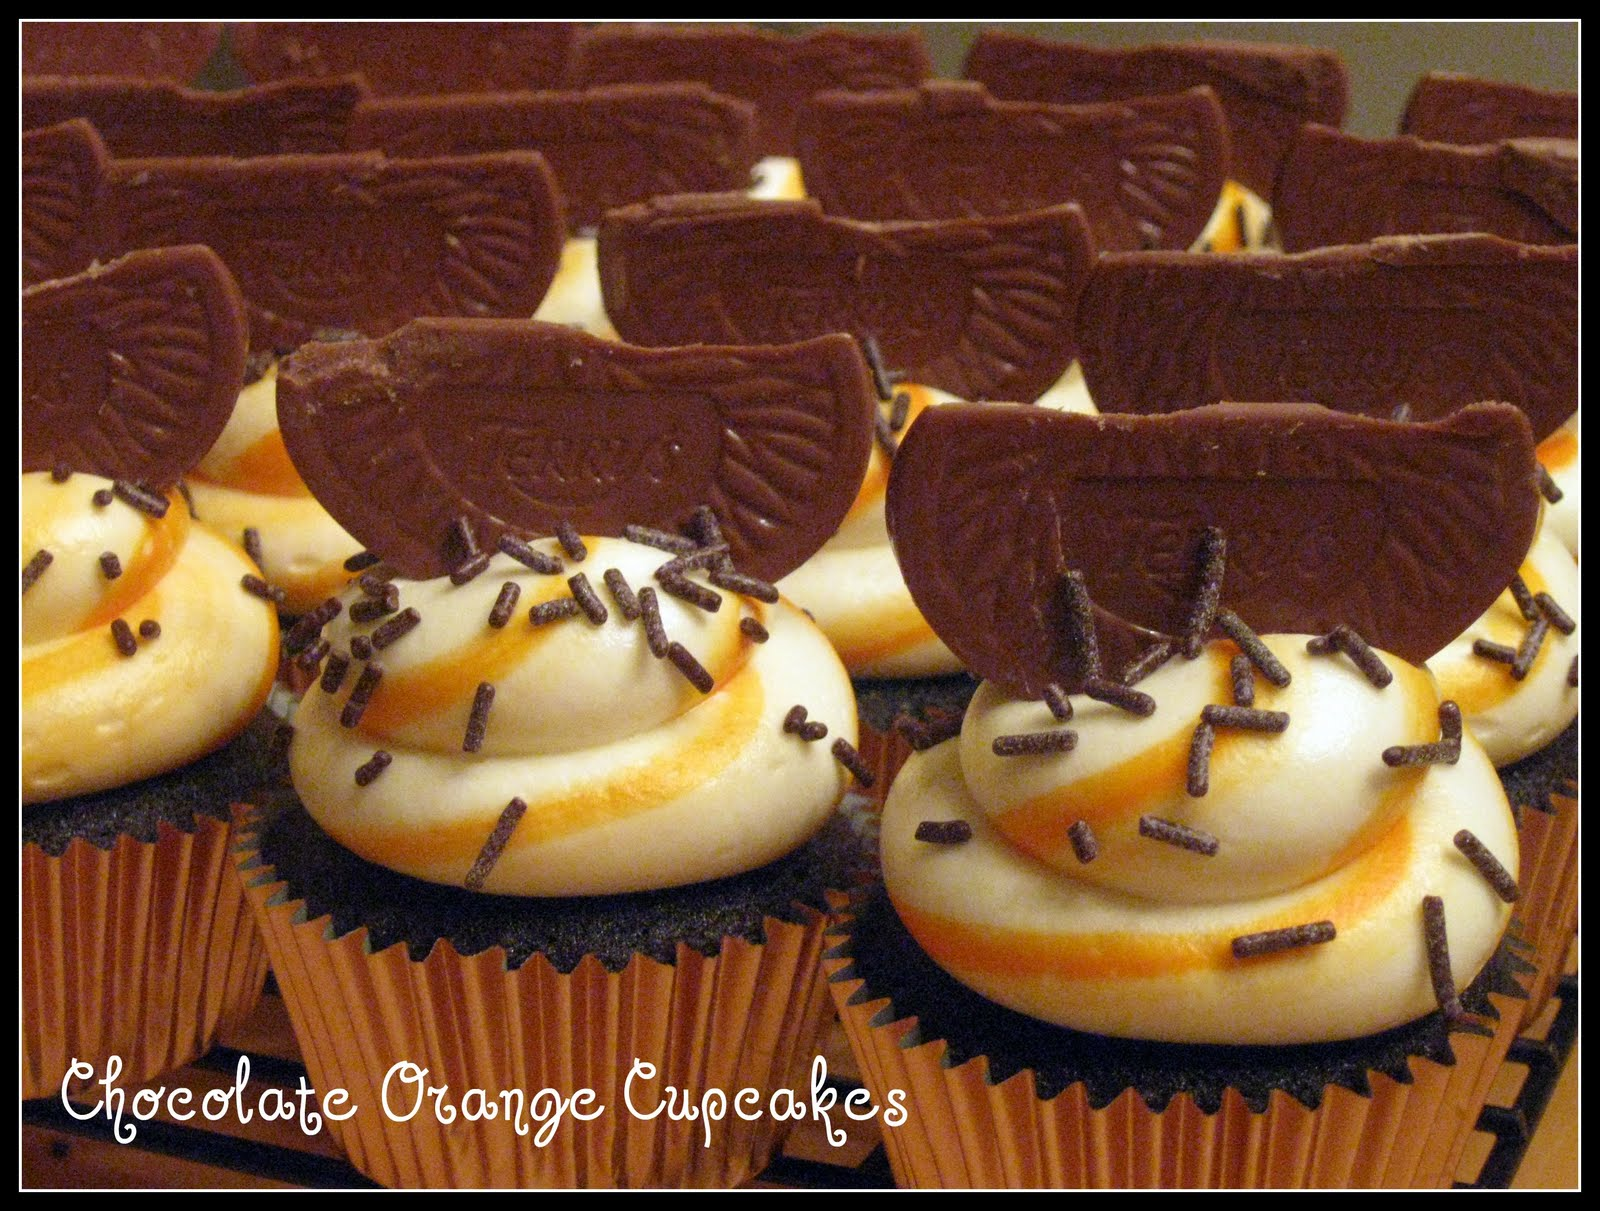 Cakes by Becky: Chocolate Orange Cupcakes